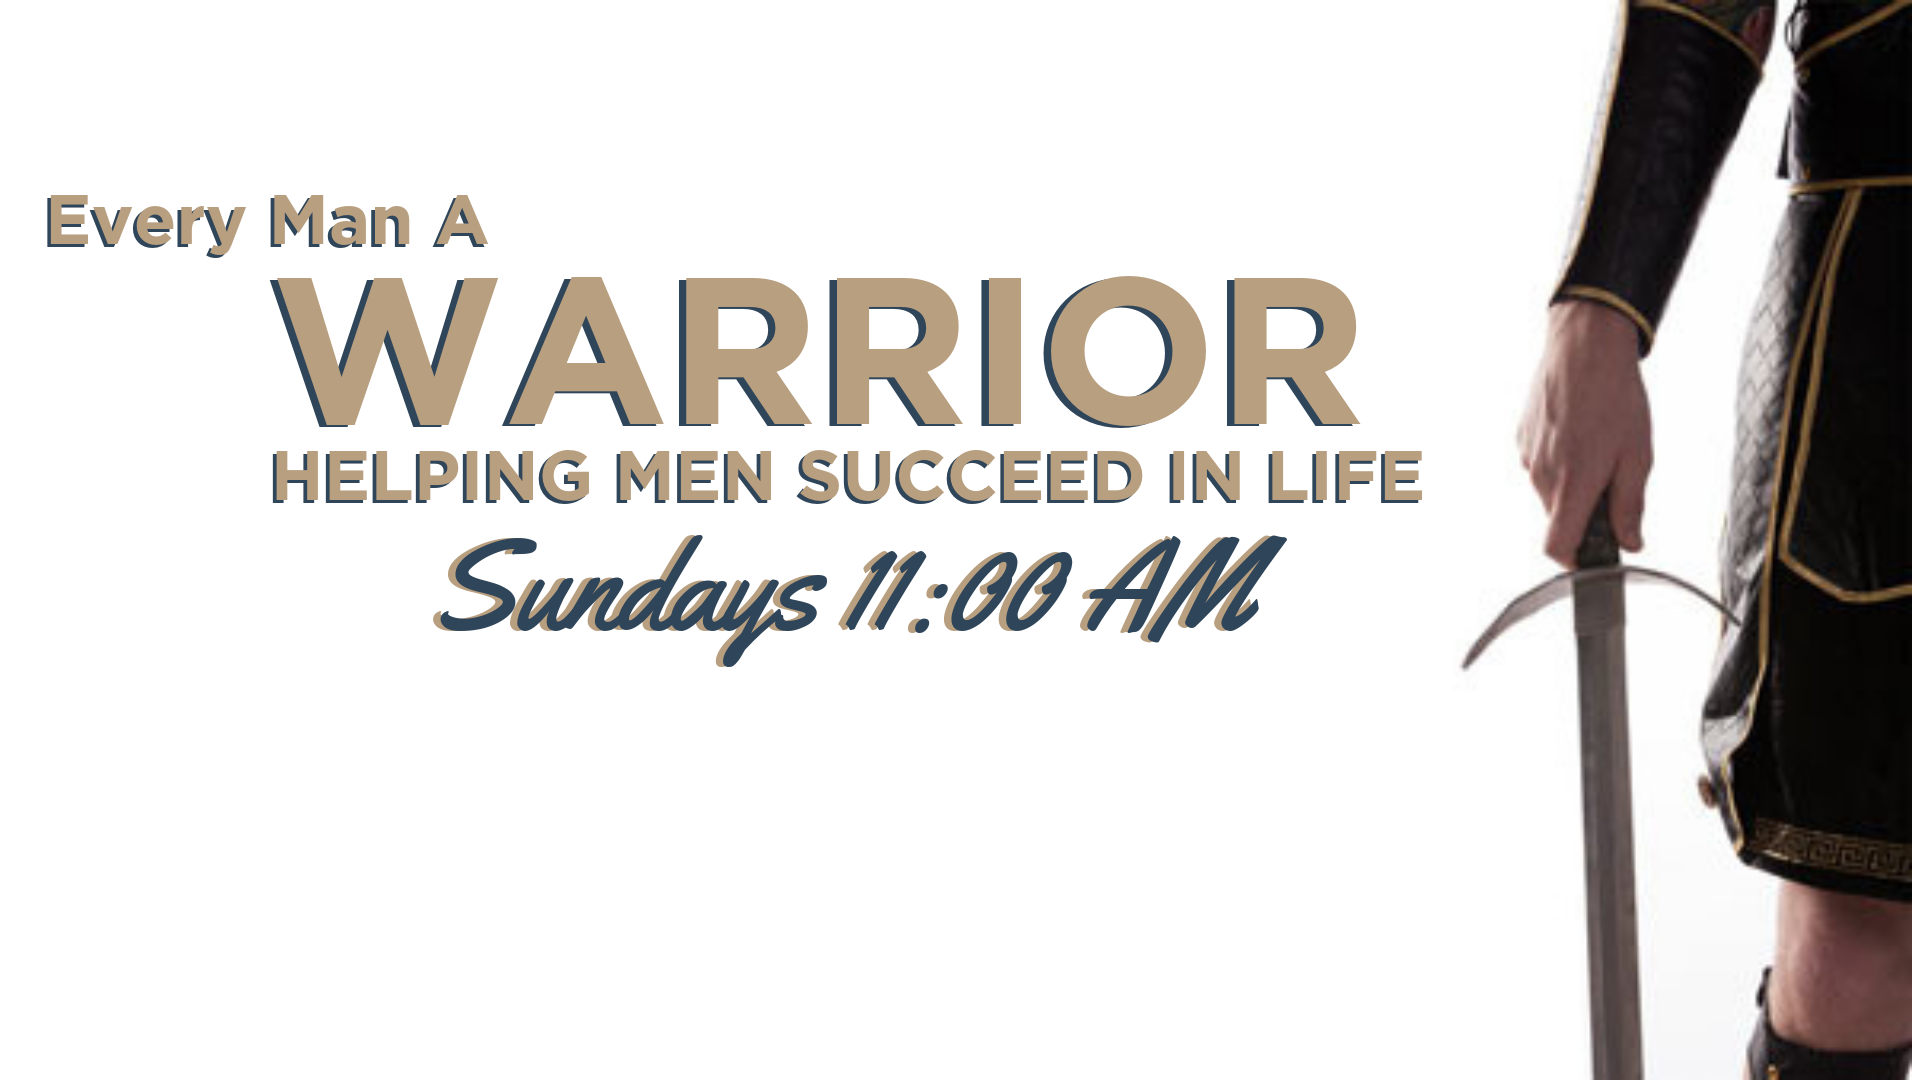 Join the men of Lifebridge Sundays at 11am as they begin a new study called Everyman A Warrior. The nine lessons of the first EVERY MAN A WARRIOR book will help you develop the essential skills of discipleship. These skills include: Having a Quiet Time, Meditating on Scripture, Prayer, and Application of the Word.